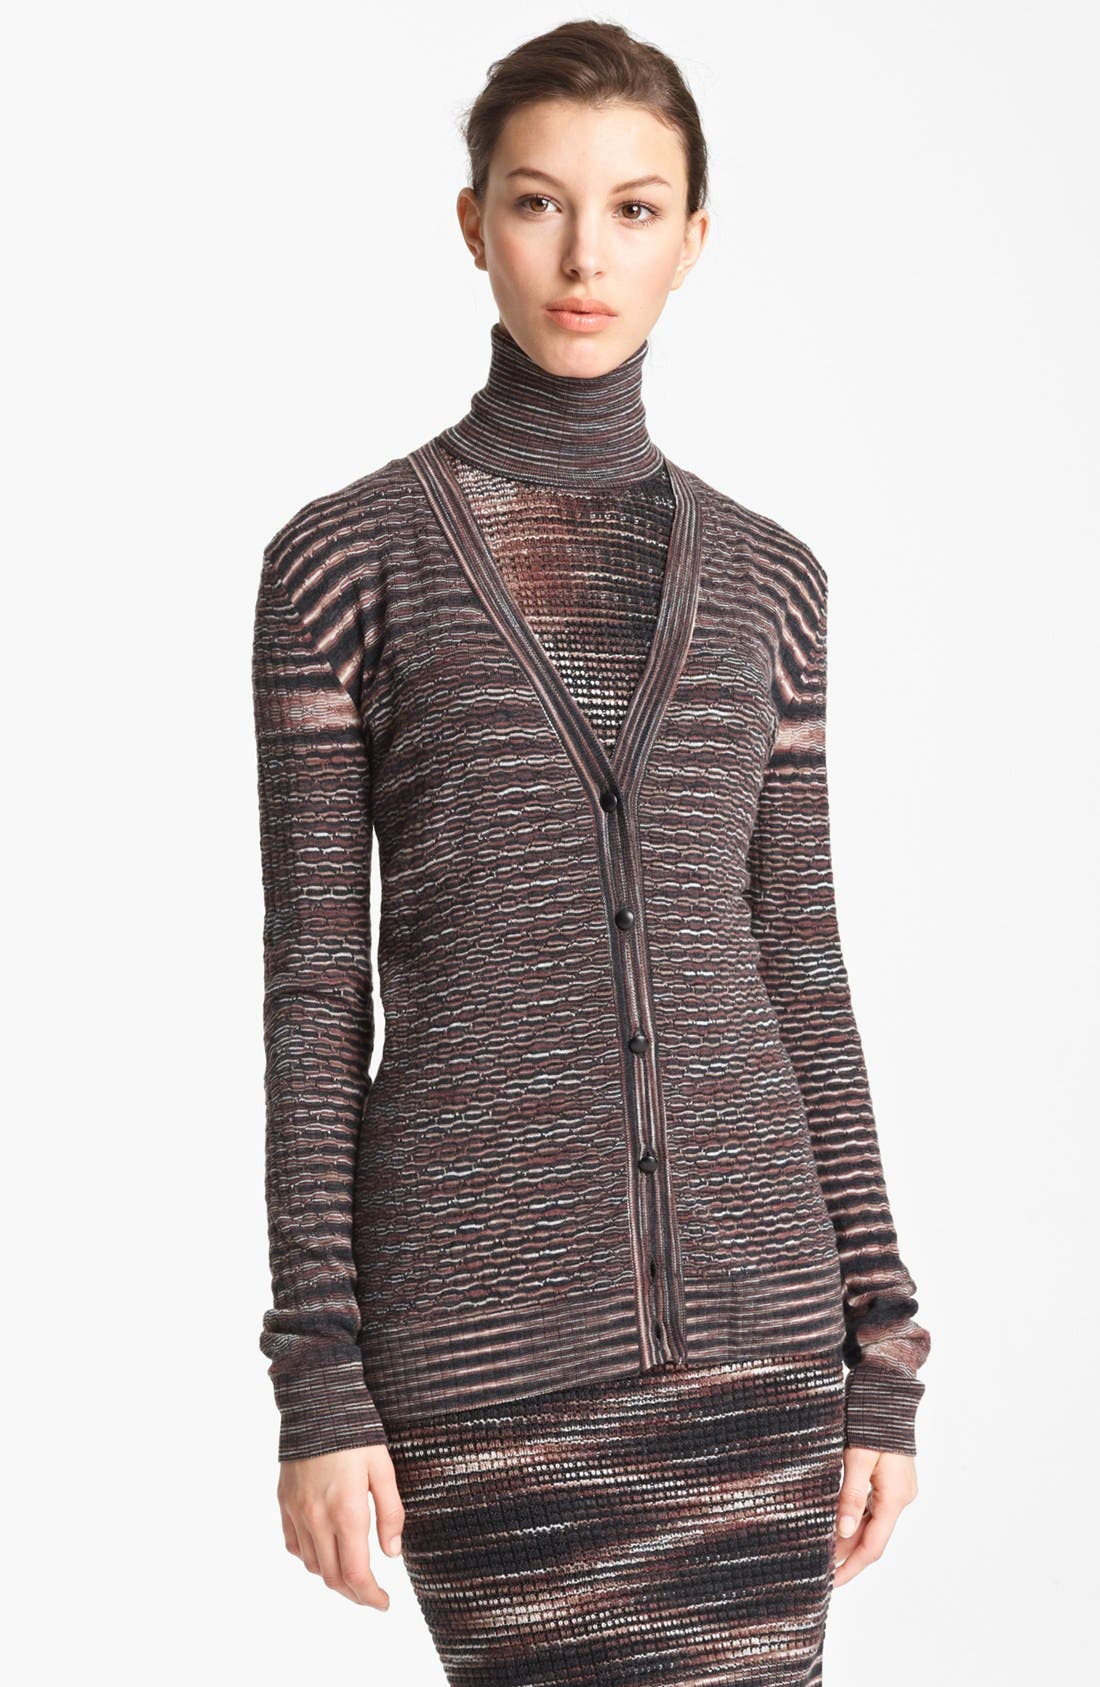 Alternate Image 1 Selected - Missoni Wavy Stitch Cardigan